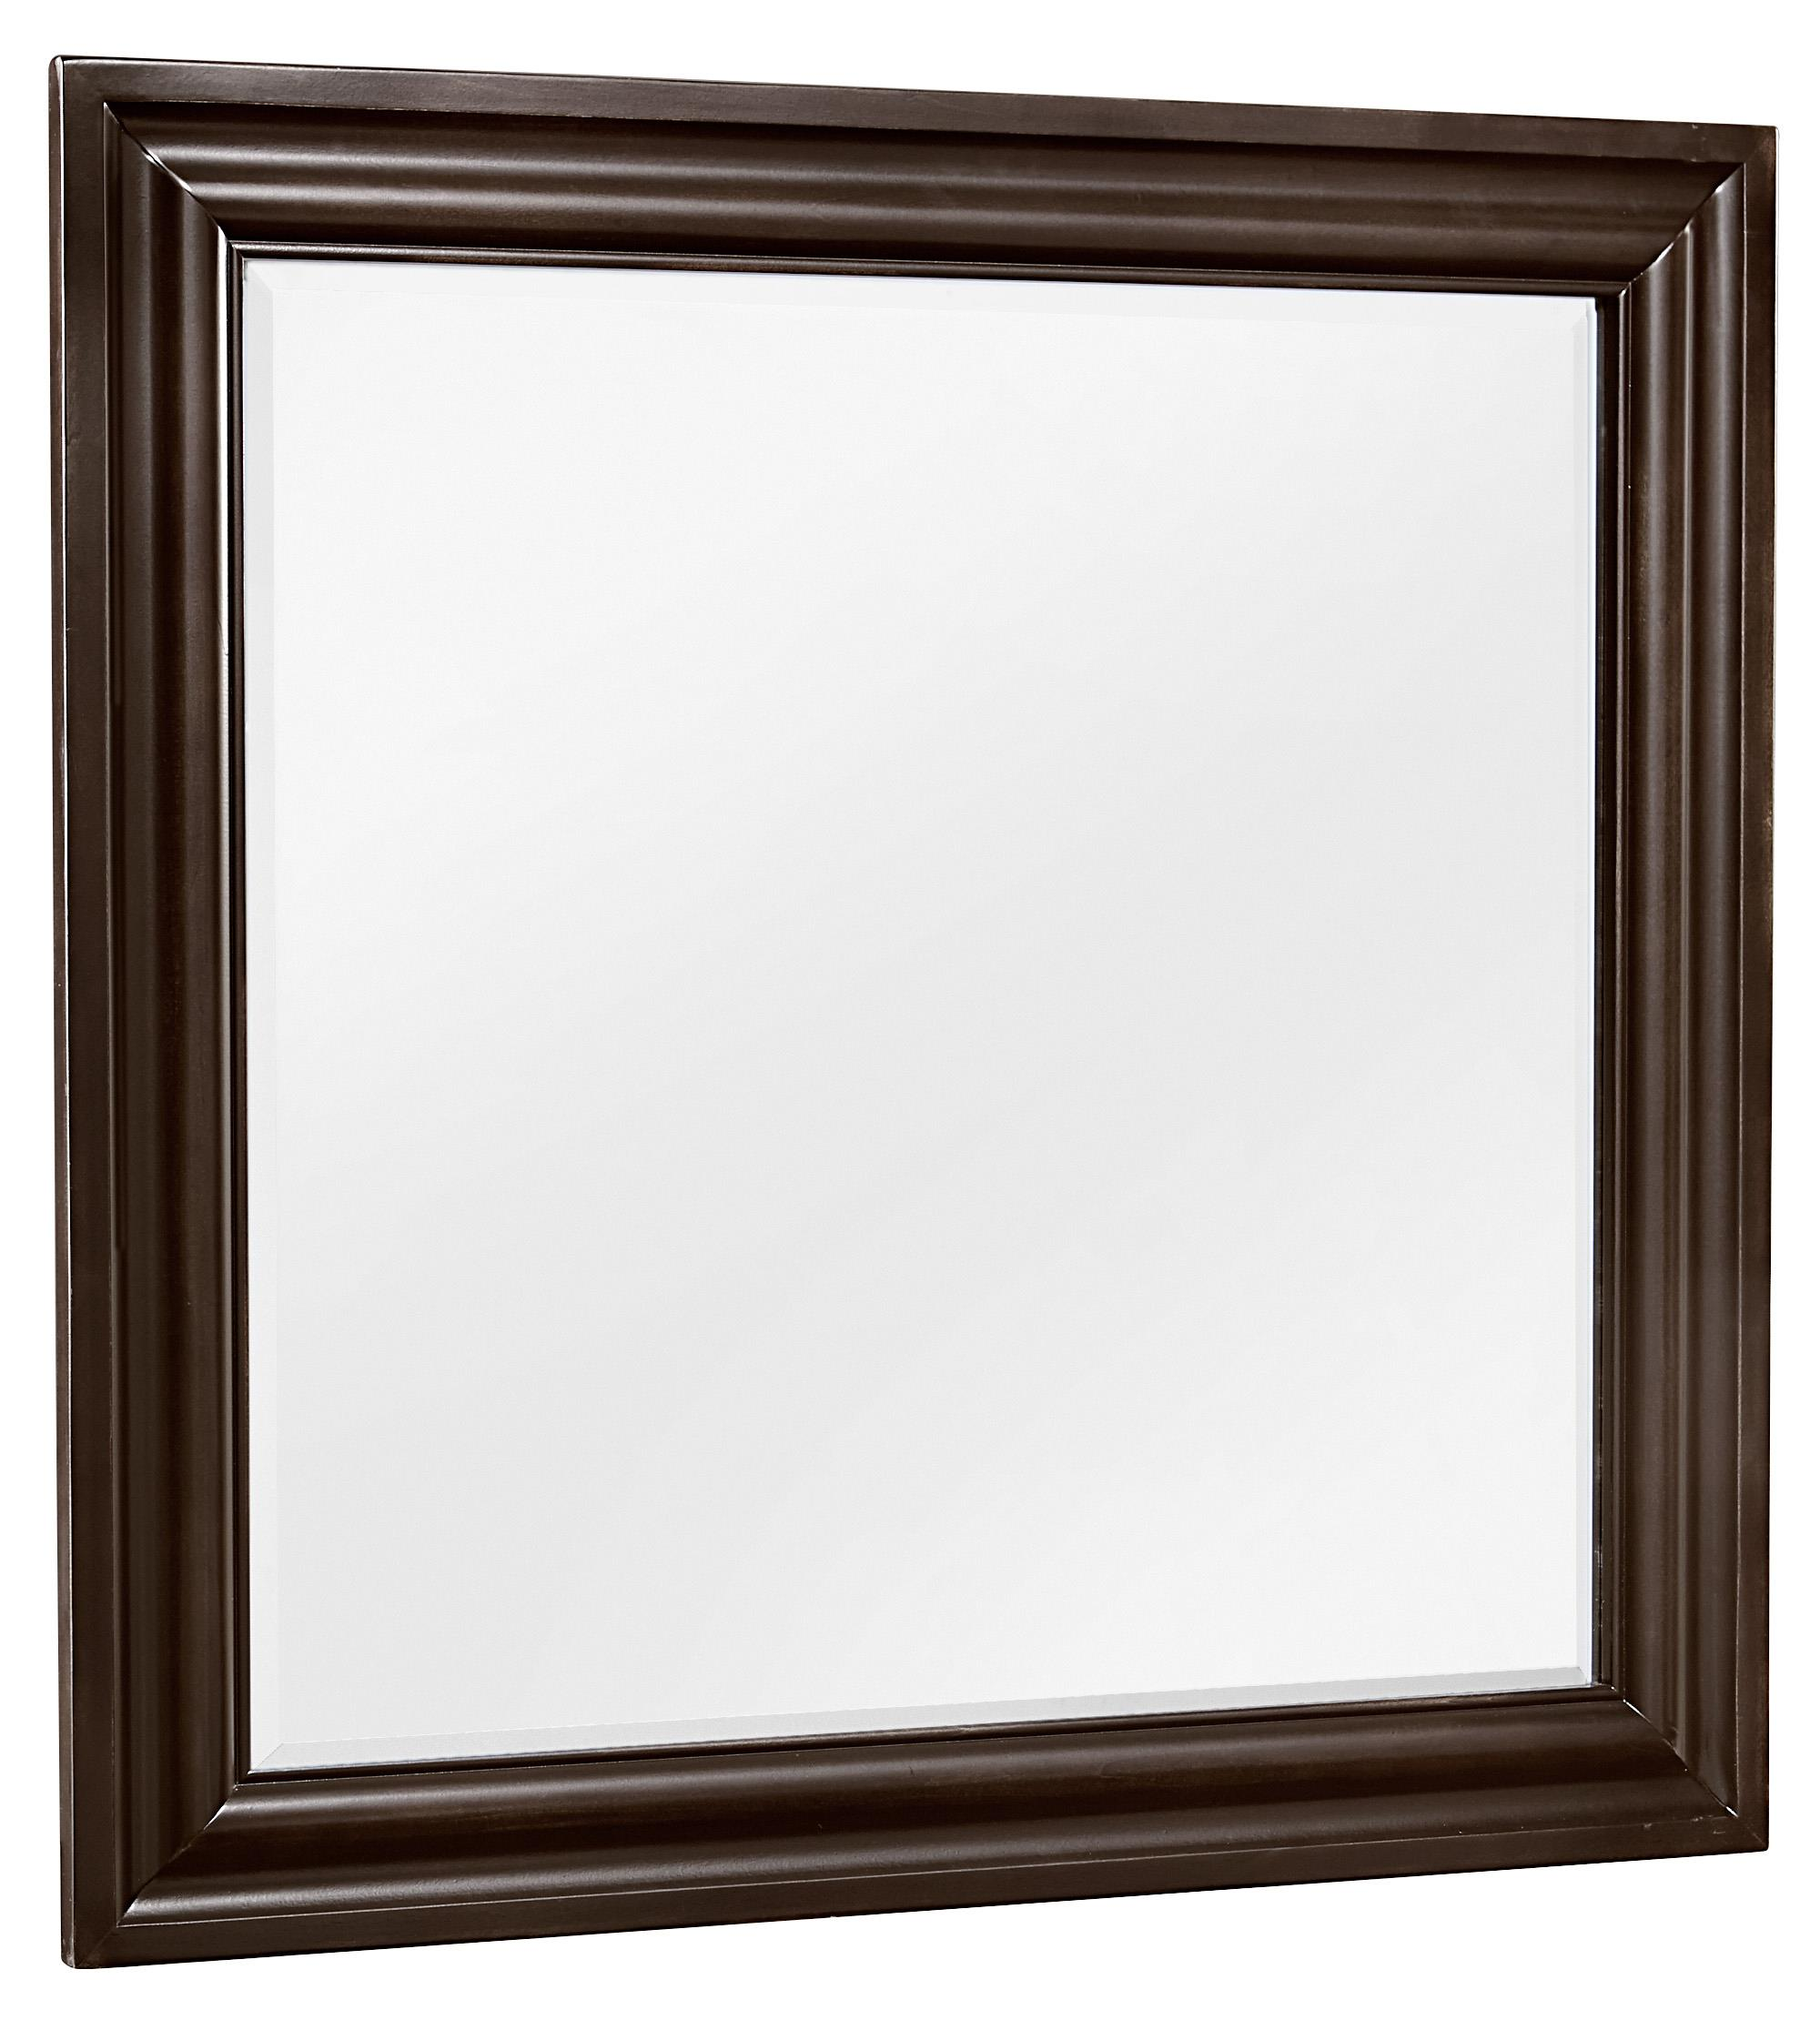 Vaughan Bassett French Market Landscape Mirror - Item Number: 380-446